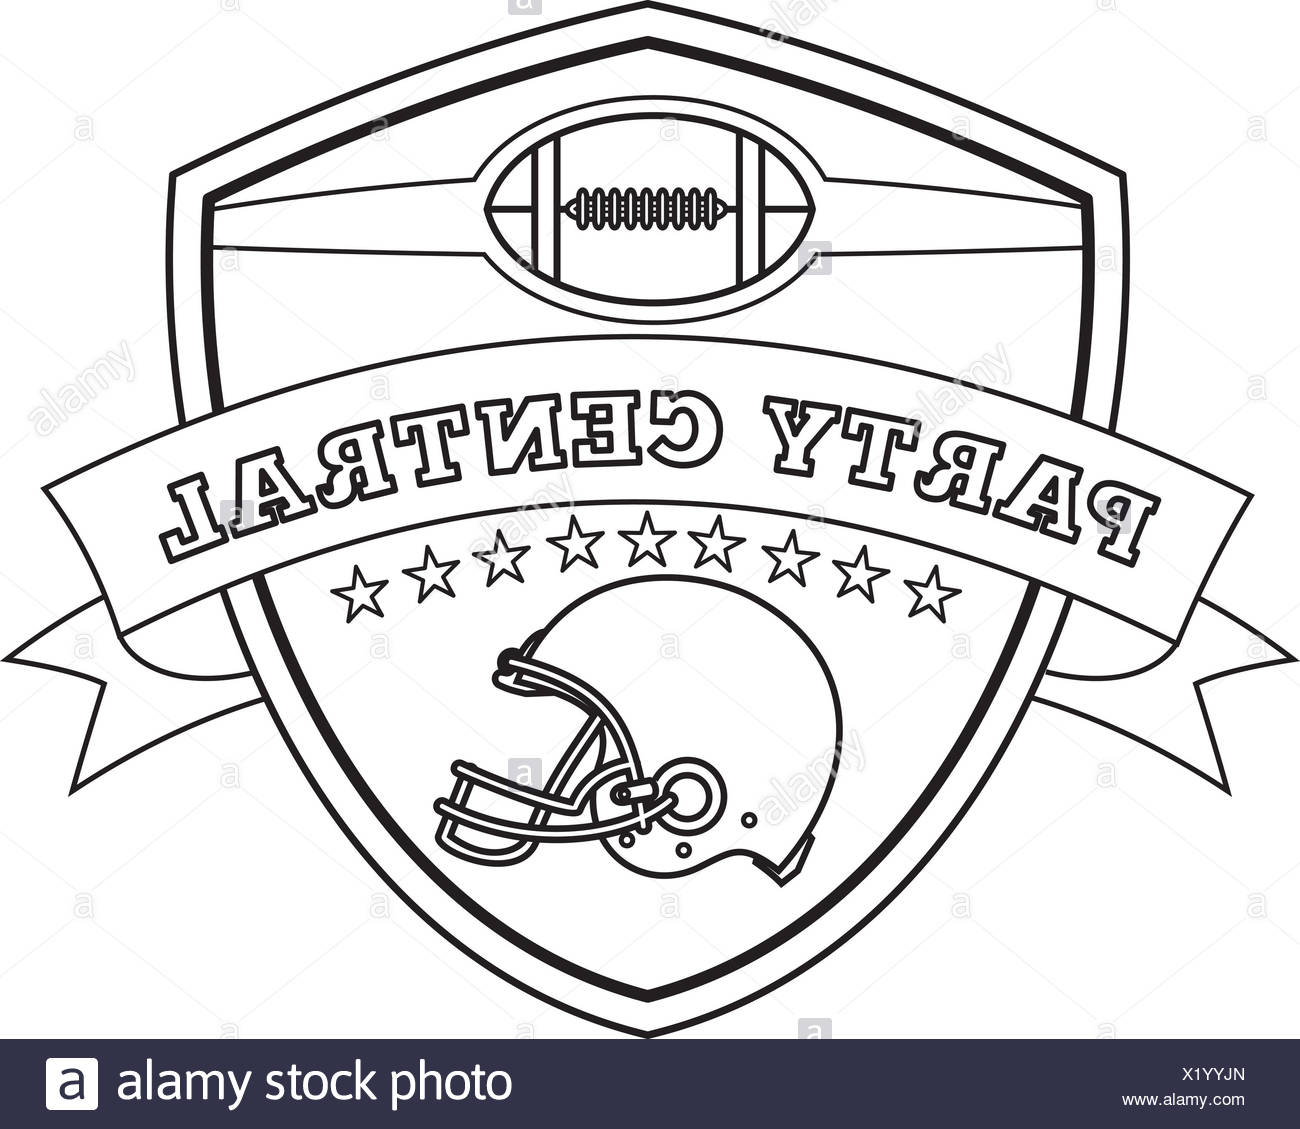 American Football Helmet Shield Line Drawing Stock Photo 276594941